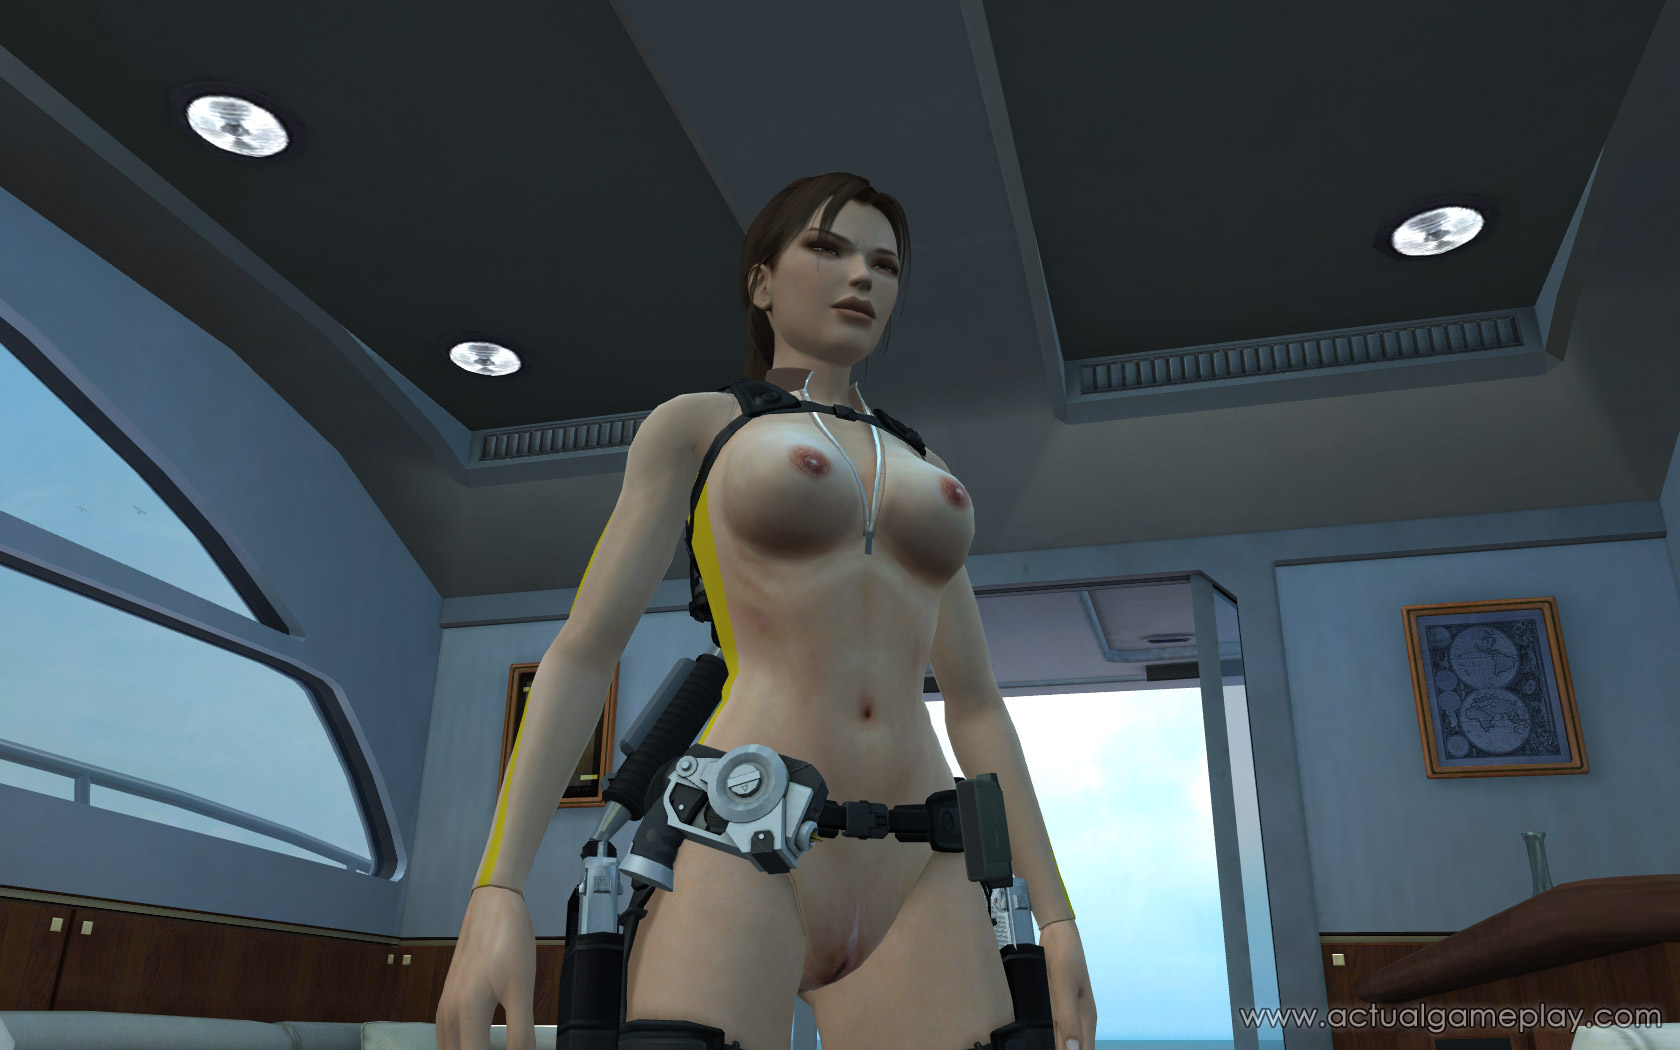 Tomb raider game character nude hentai movie